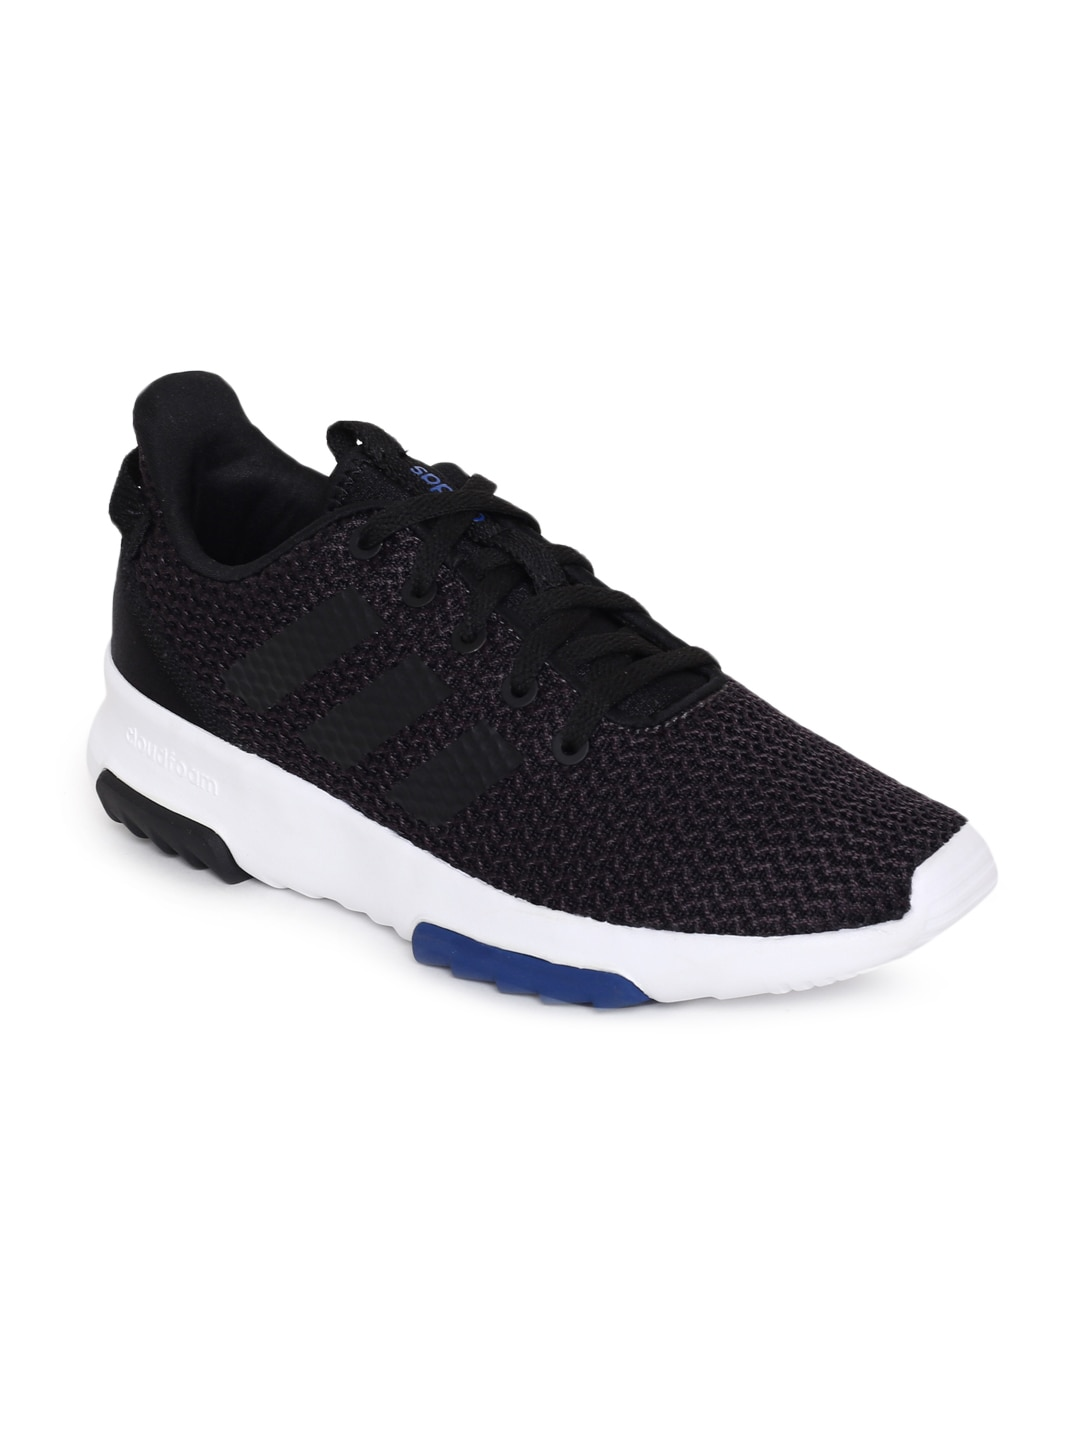 buy online 17934 139a7 Adidas Ruff Sports Shoes - Buy Adidas Ruff Sports Shoes onli